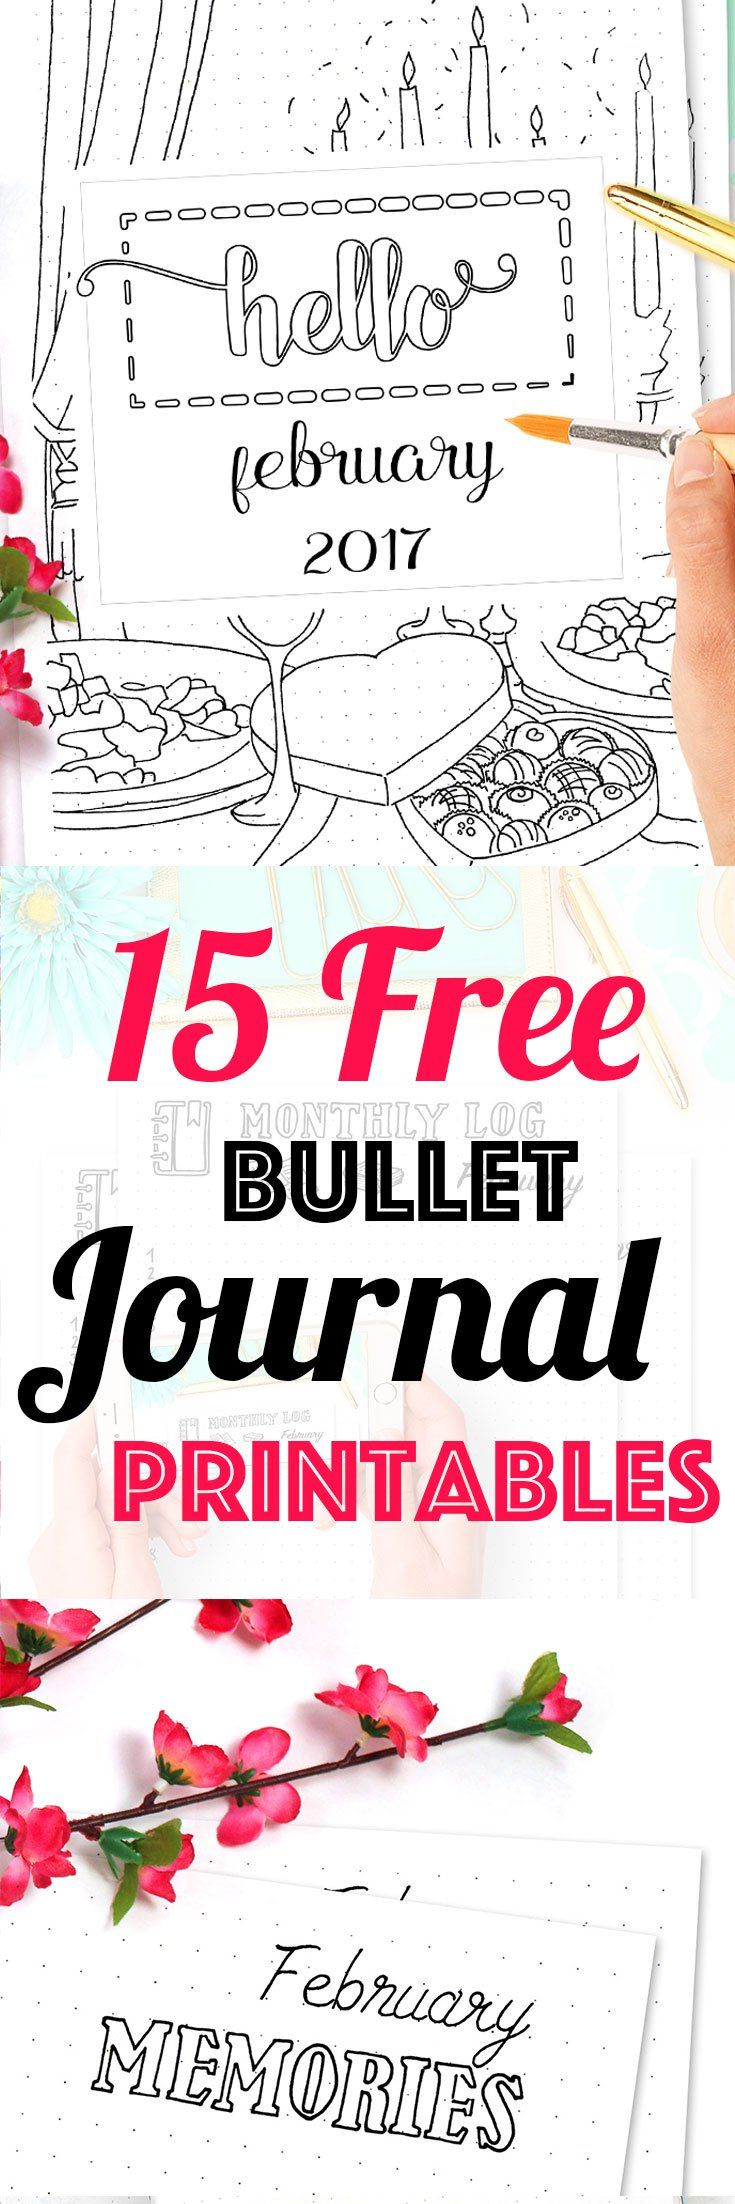 15 Pages Strong Free Bullet Journal Printables Kit • February 2017. Including Habit Tracker, February Memories, Monthly Log and many more beautiful pages. // by Wundertastisch Design